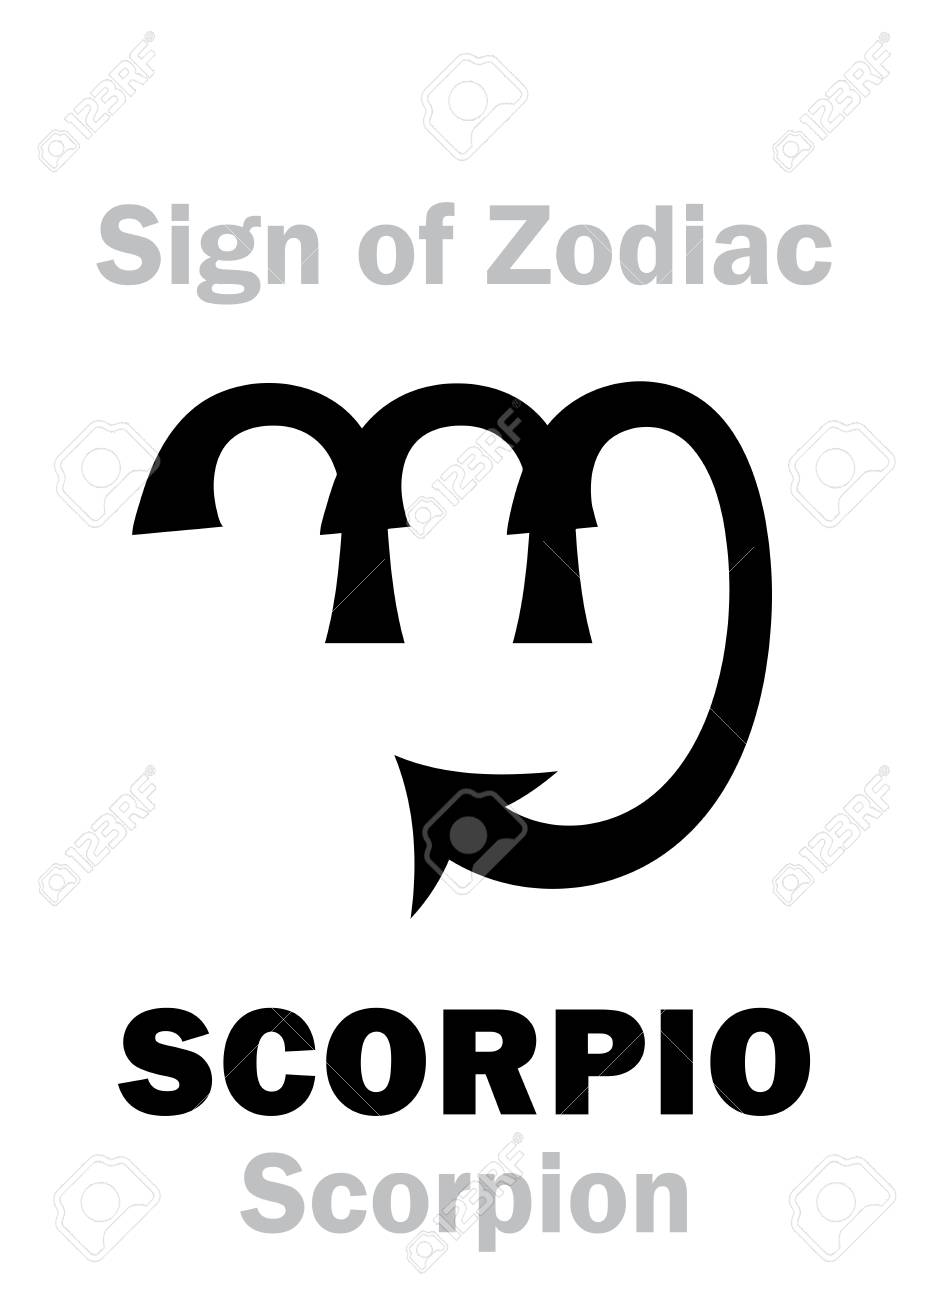 Astrology alphabet sign of zodiac scorpio the scorpion astrology alphabet sign of zodiac scorpio the scorpion hieroglyphics character sign buycottarizona Image collections